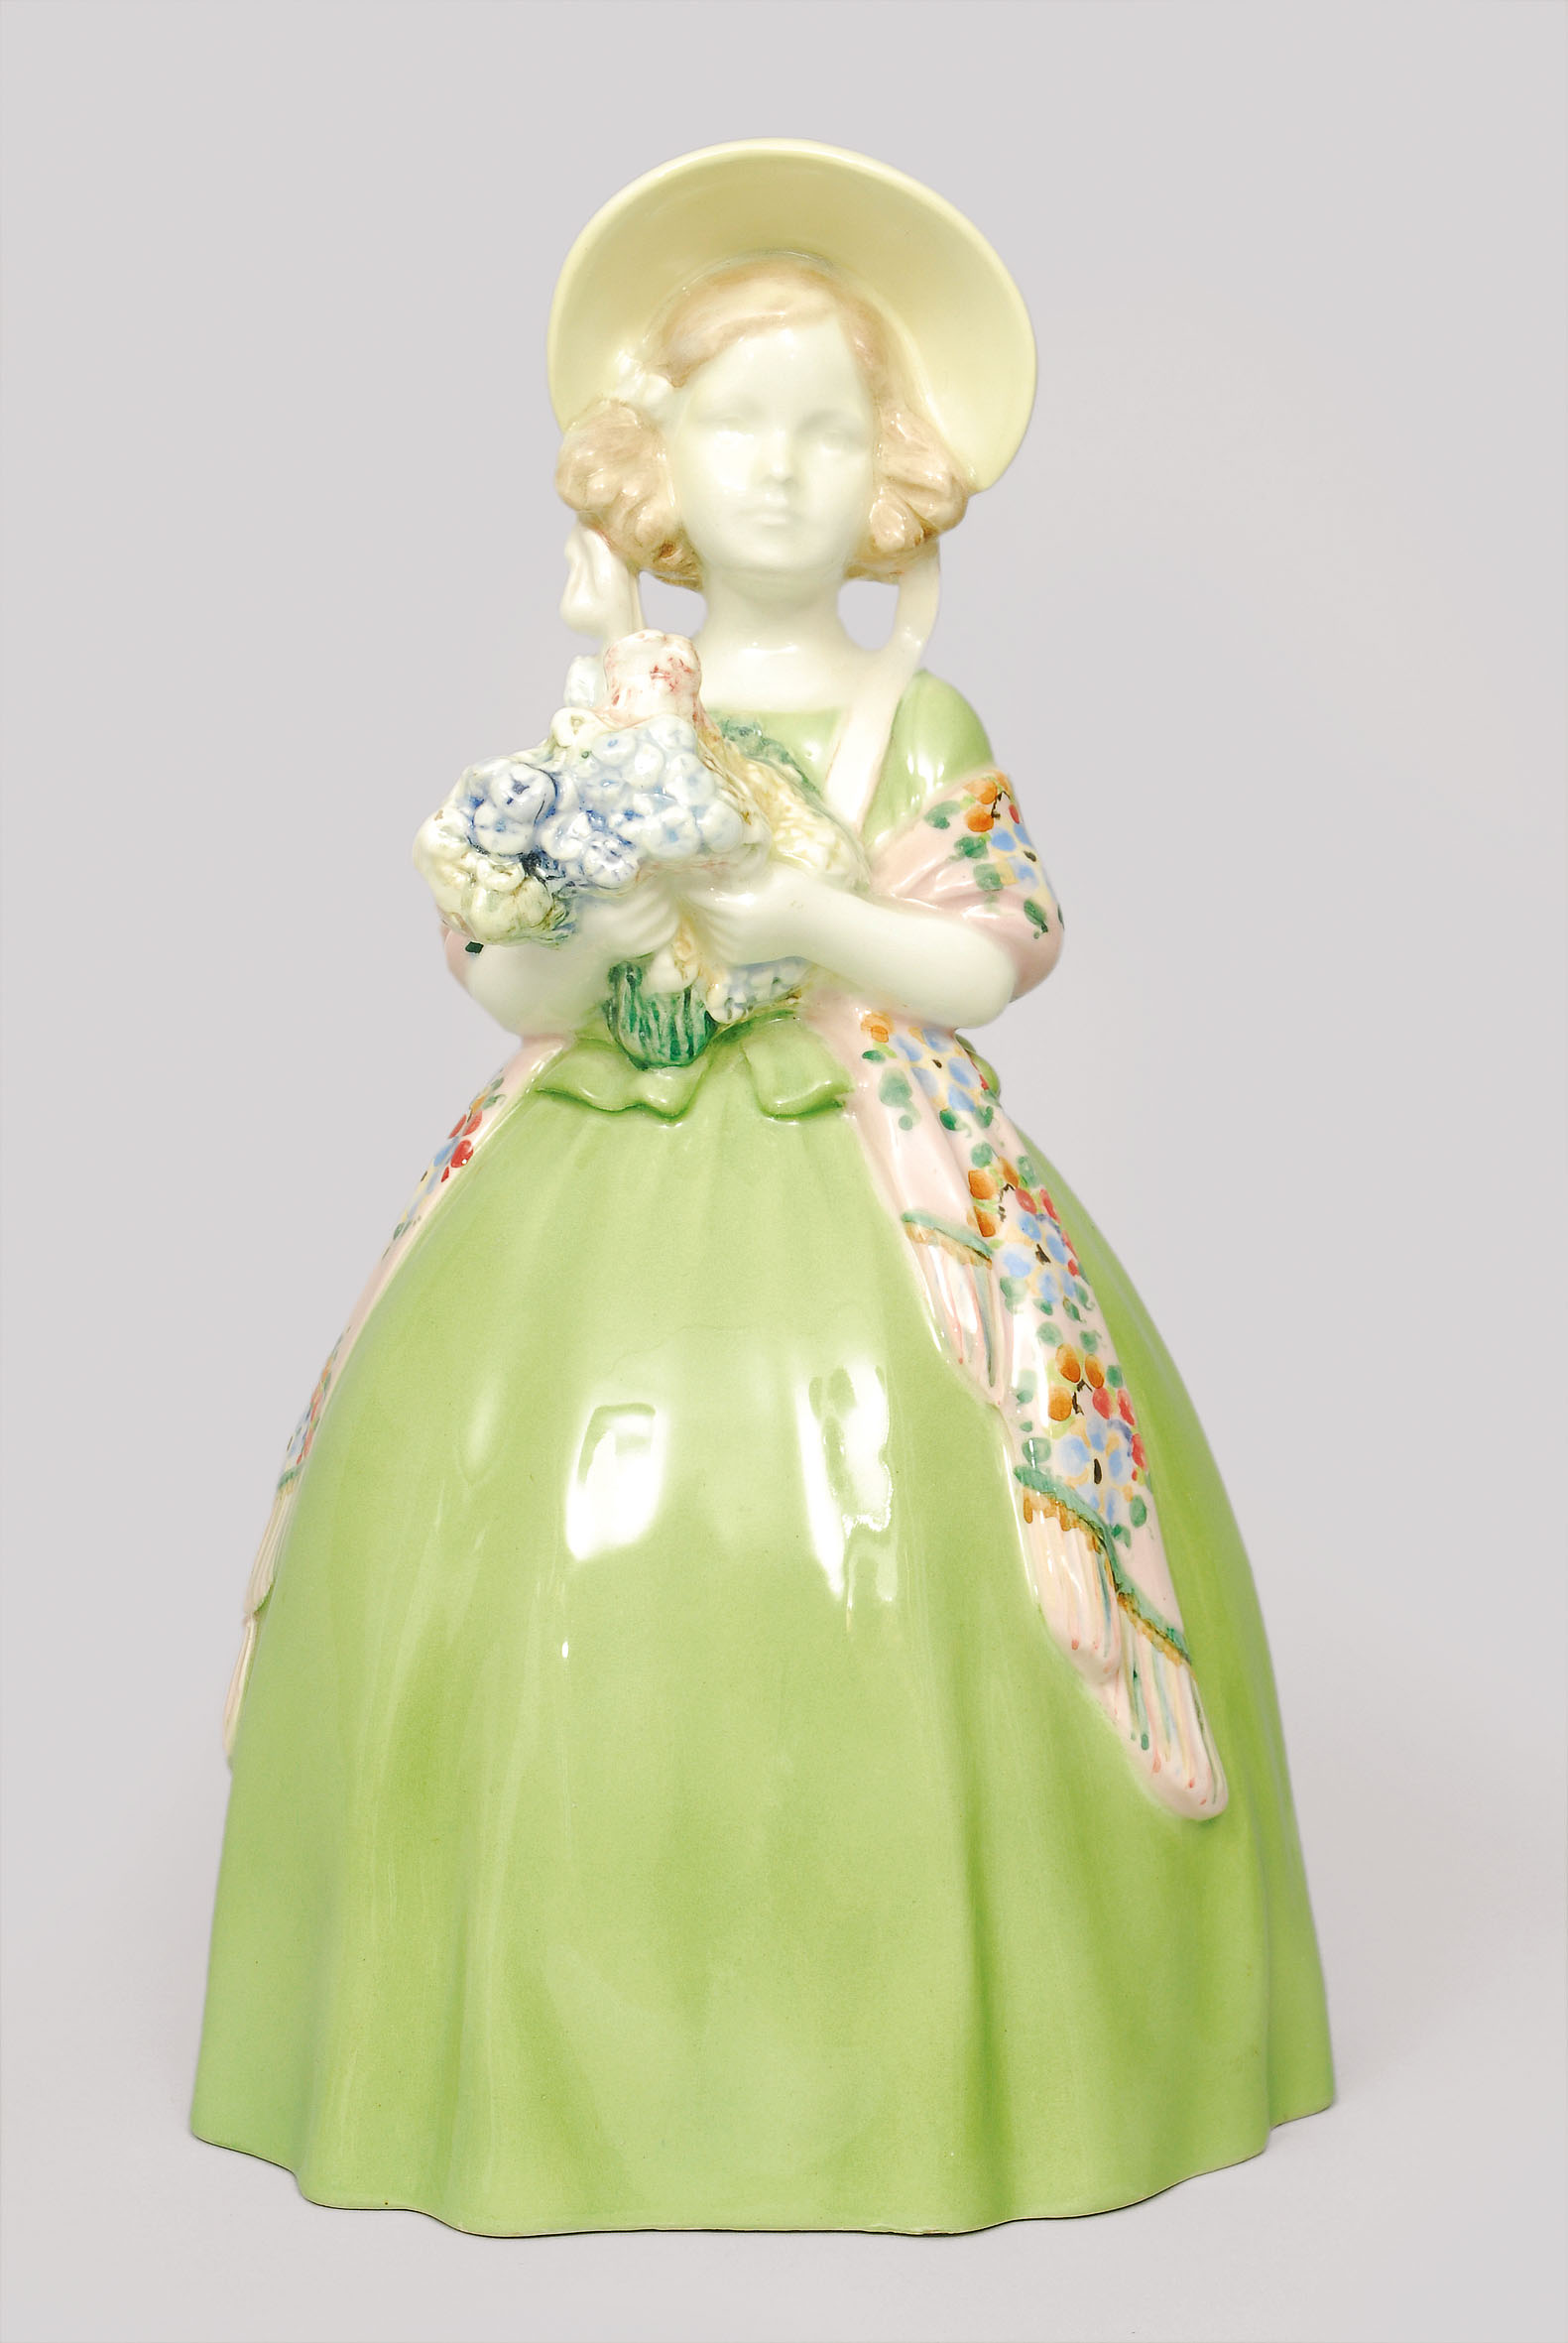 A figurine 'Biedermeier' girl with hat and bouquet